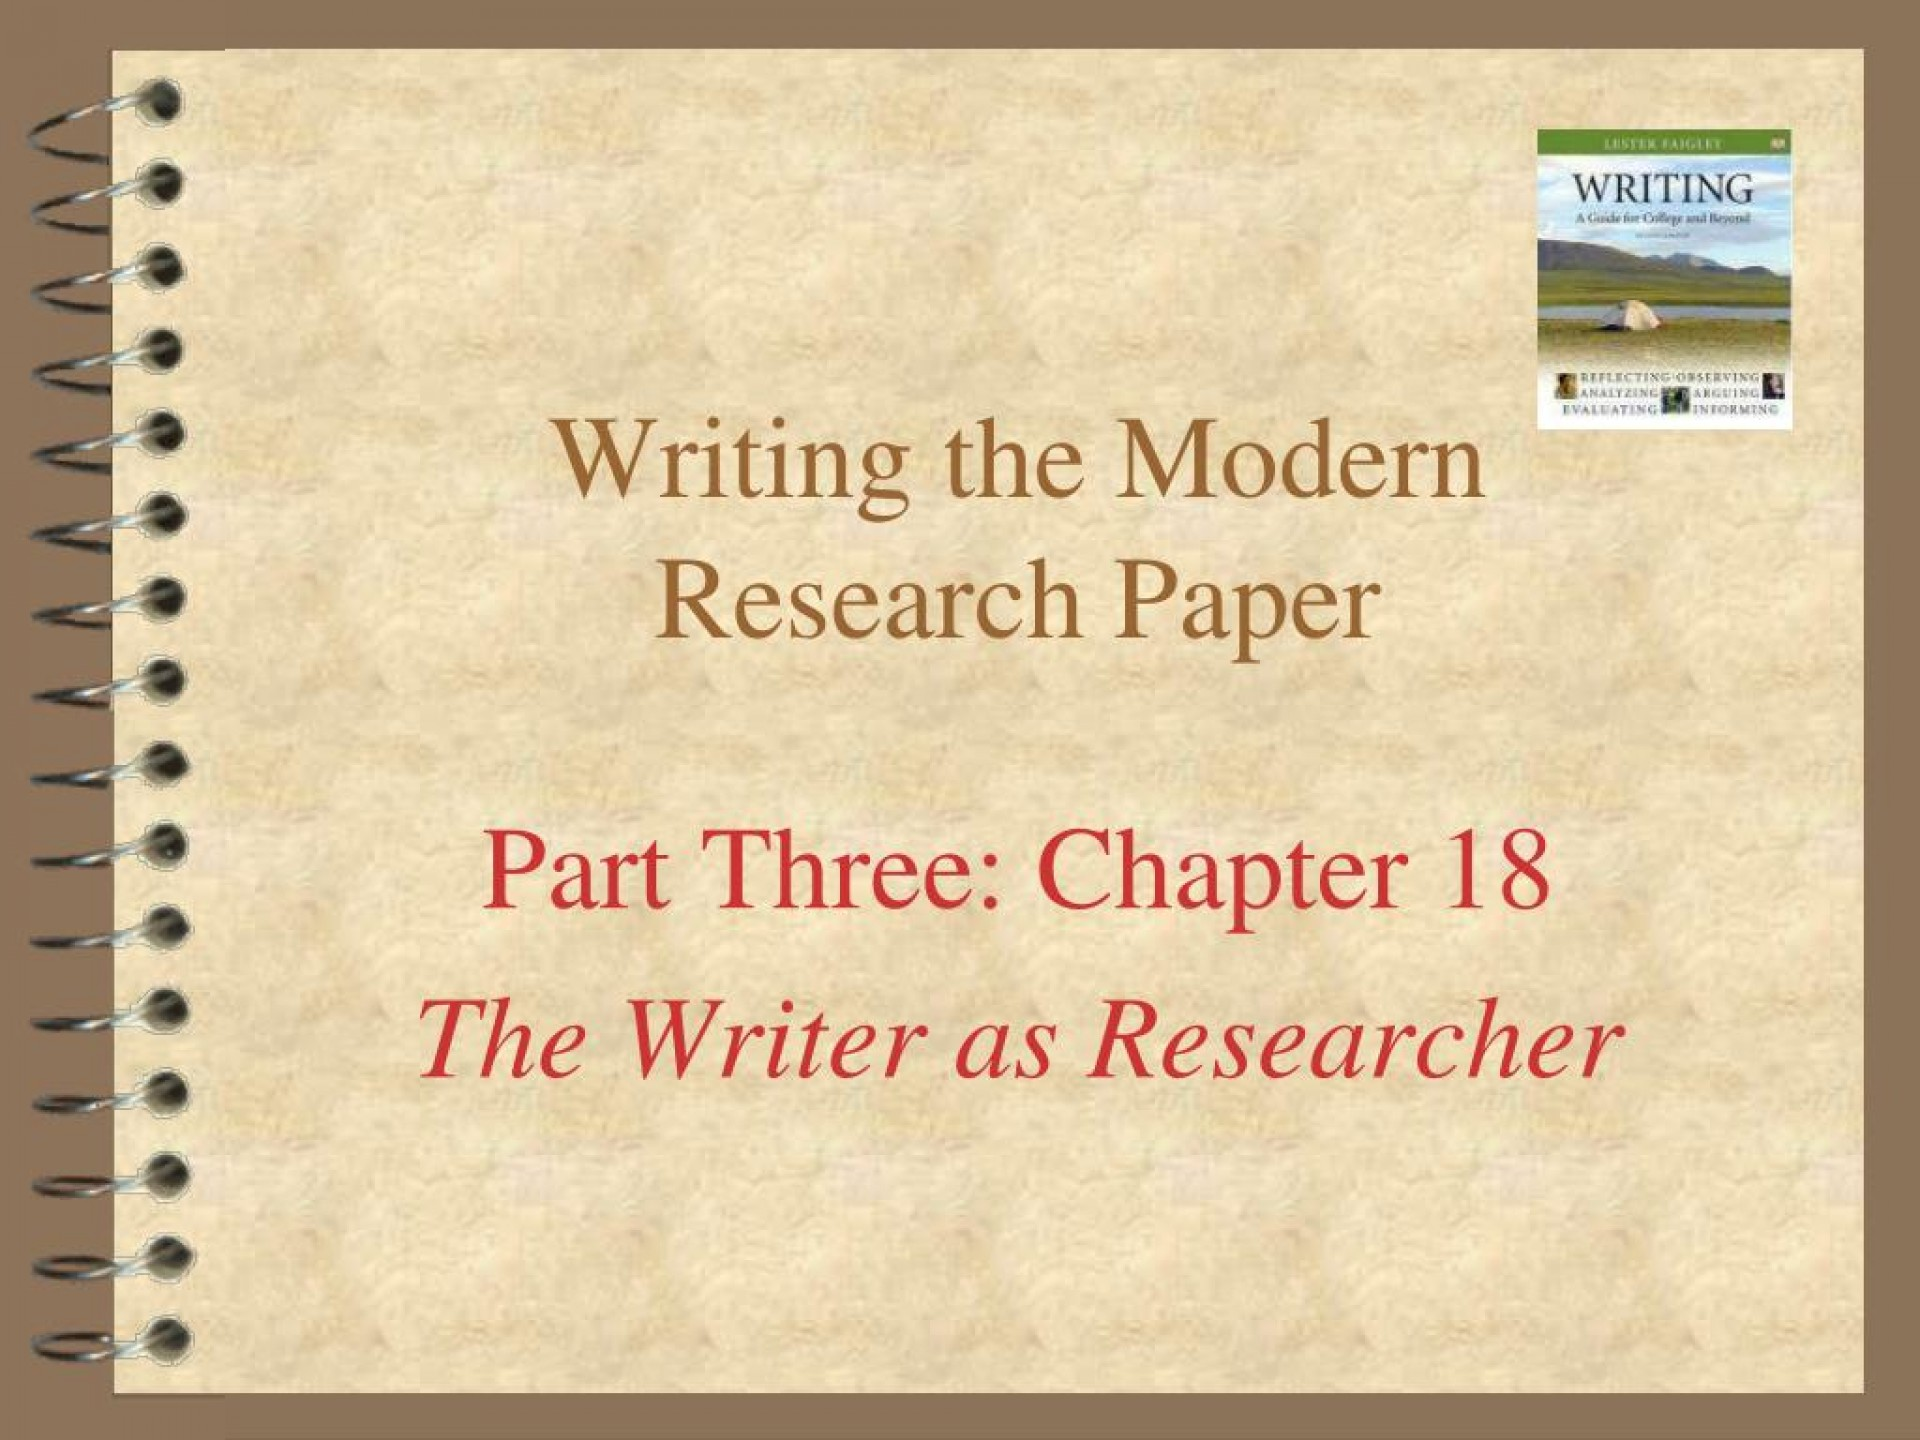 015 Writing The Modern Research Paper L How To Make Staggering Ppt Prepare A Powerpoint Presentation 1920